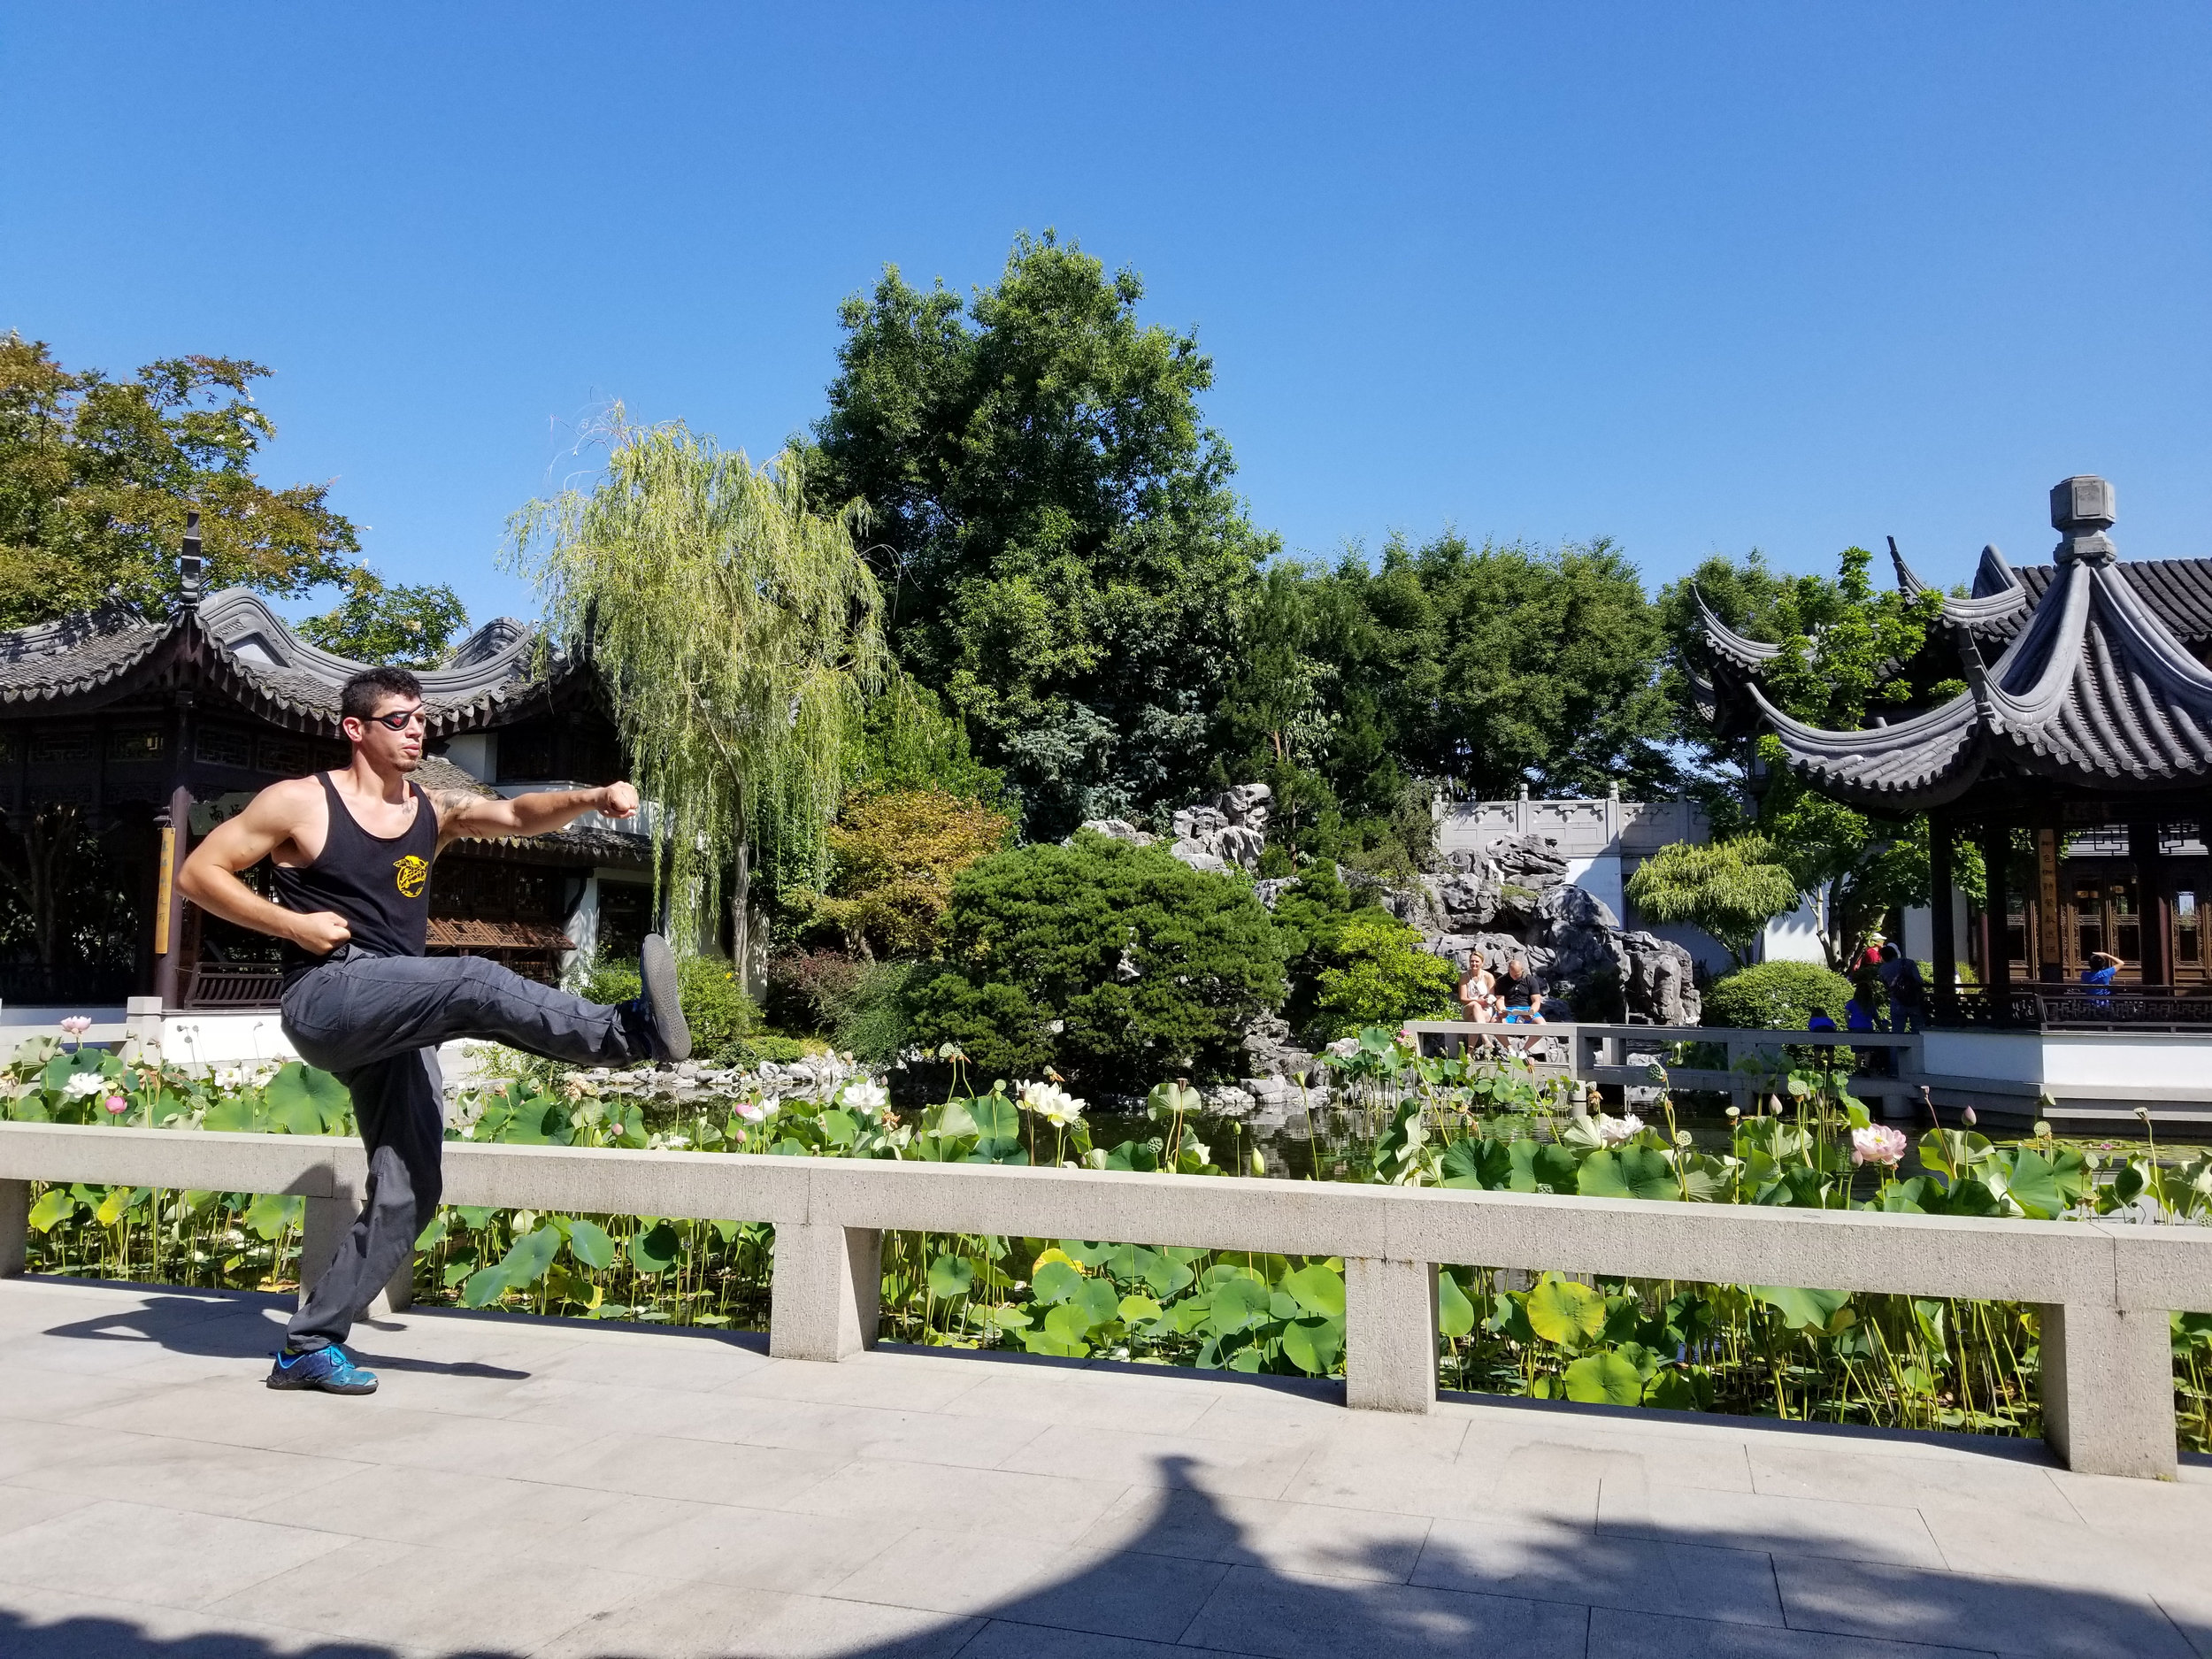 Joey warms up before teaching his class: Beijing Internal Kung Fu at the Lan Su Chinese Garden. Every Tuesday 10am - 11am.